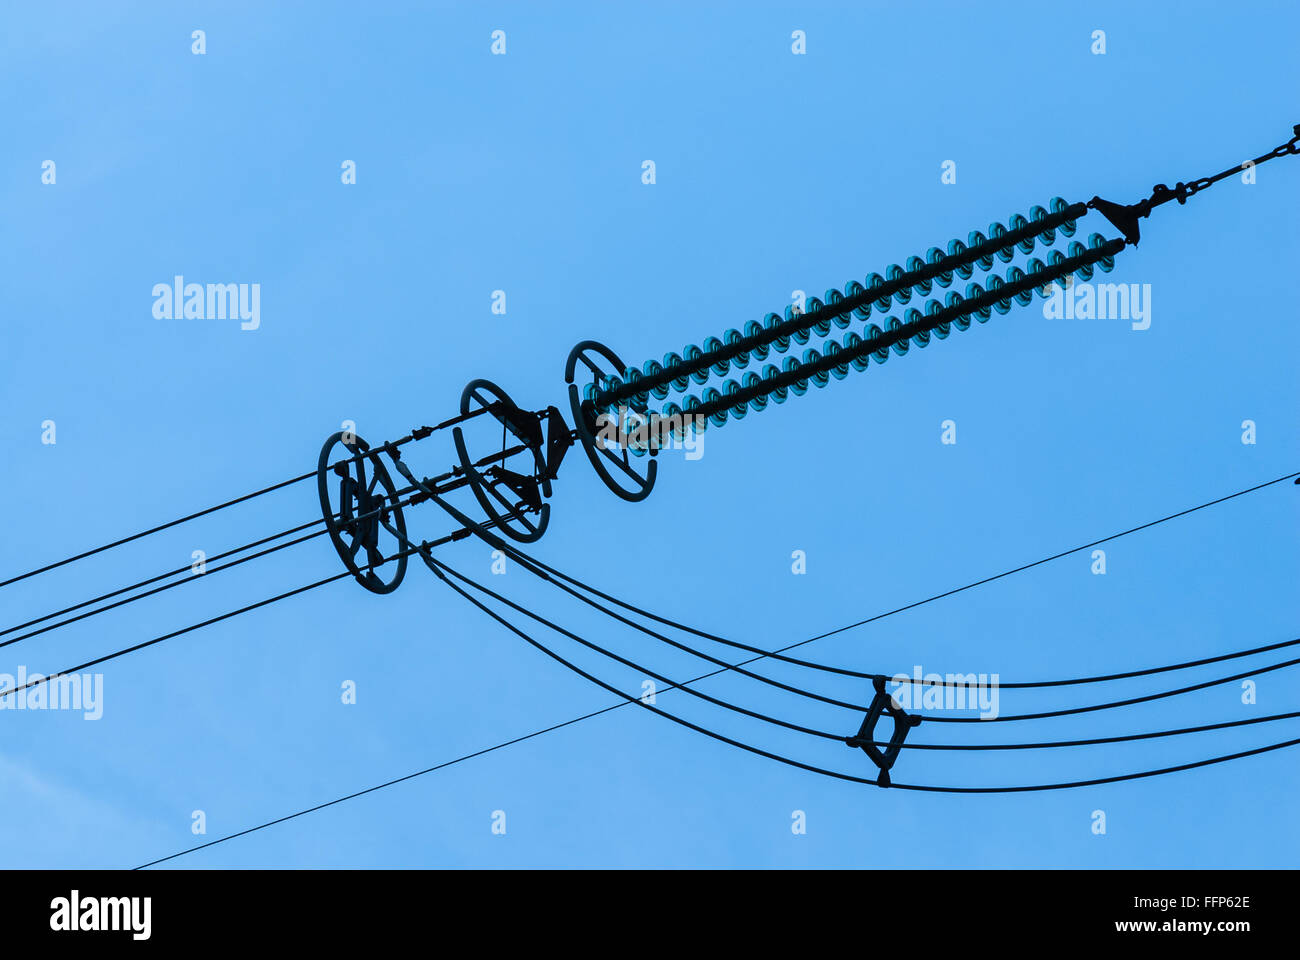 sky phone line wiring diagram close up of electrical insulator on high voltage power lines  with  high voltage power lines